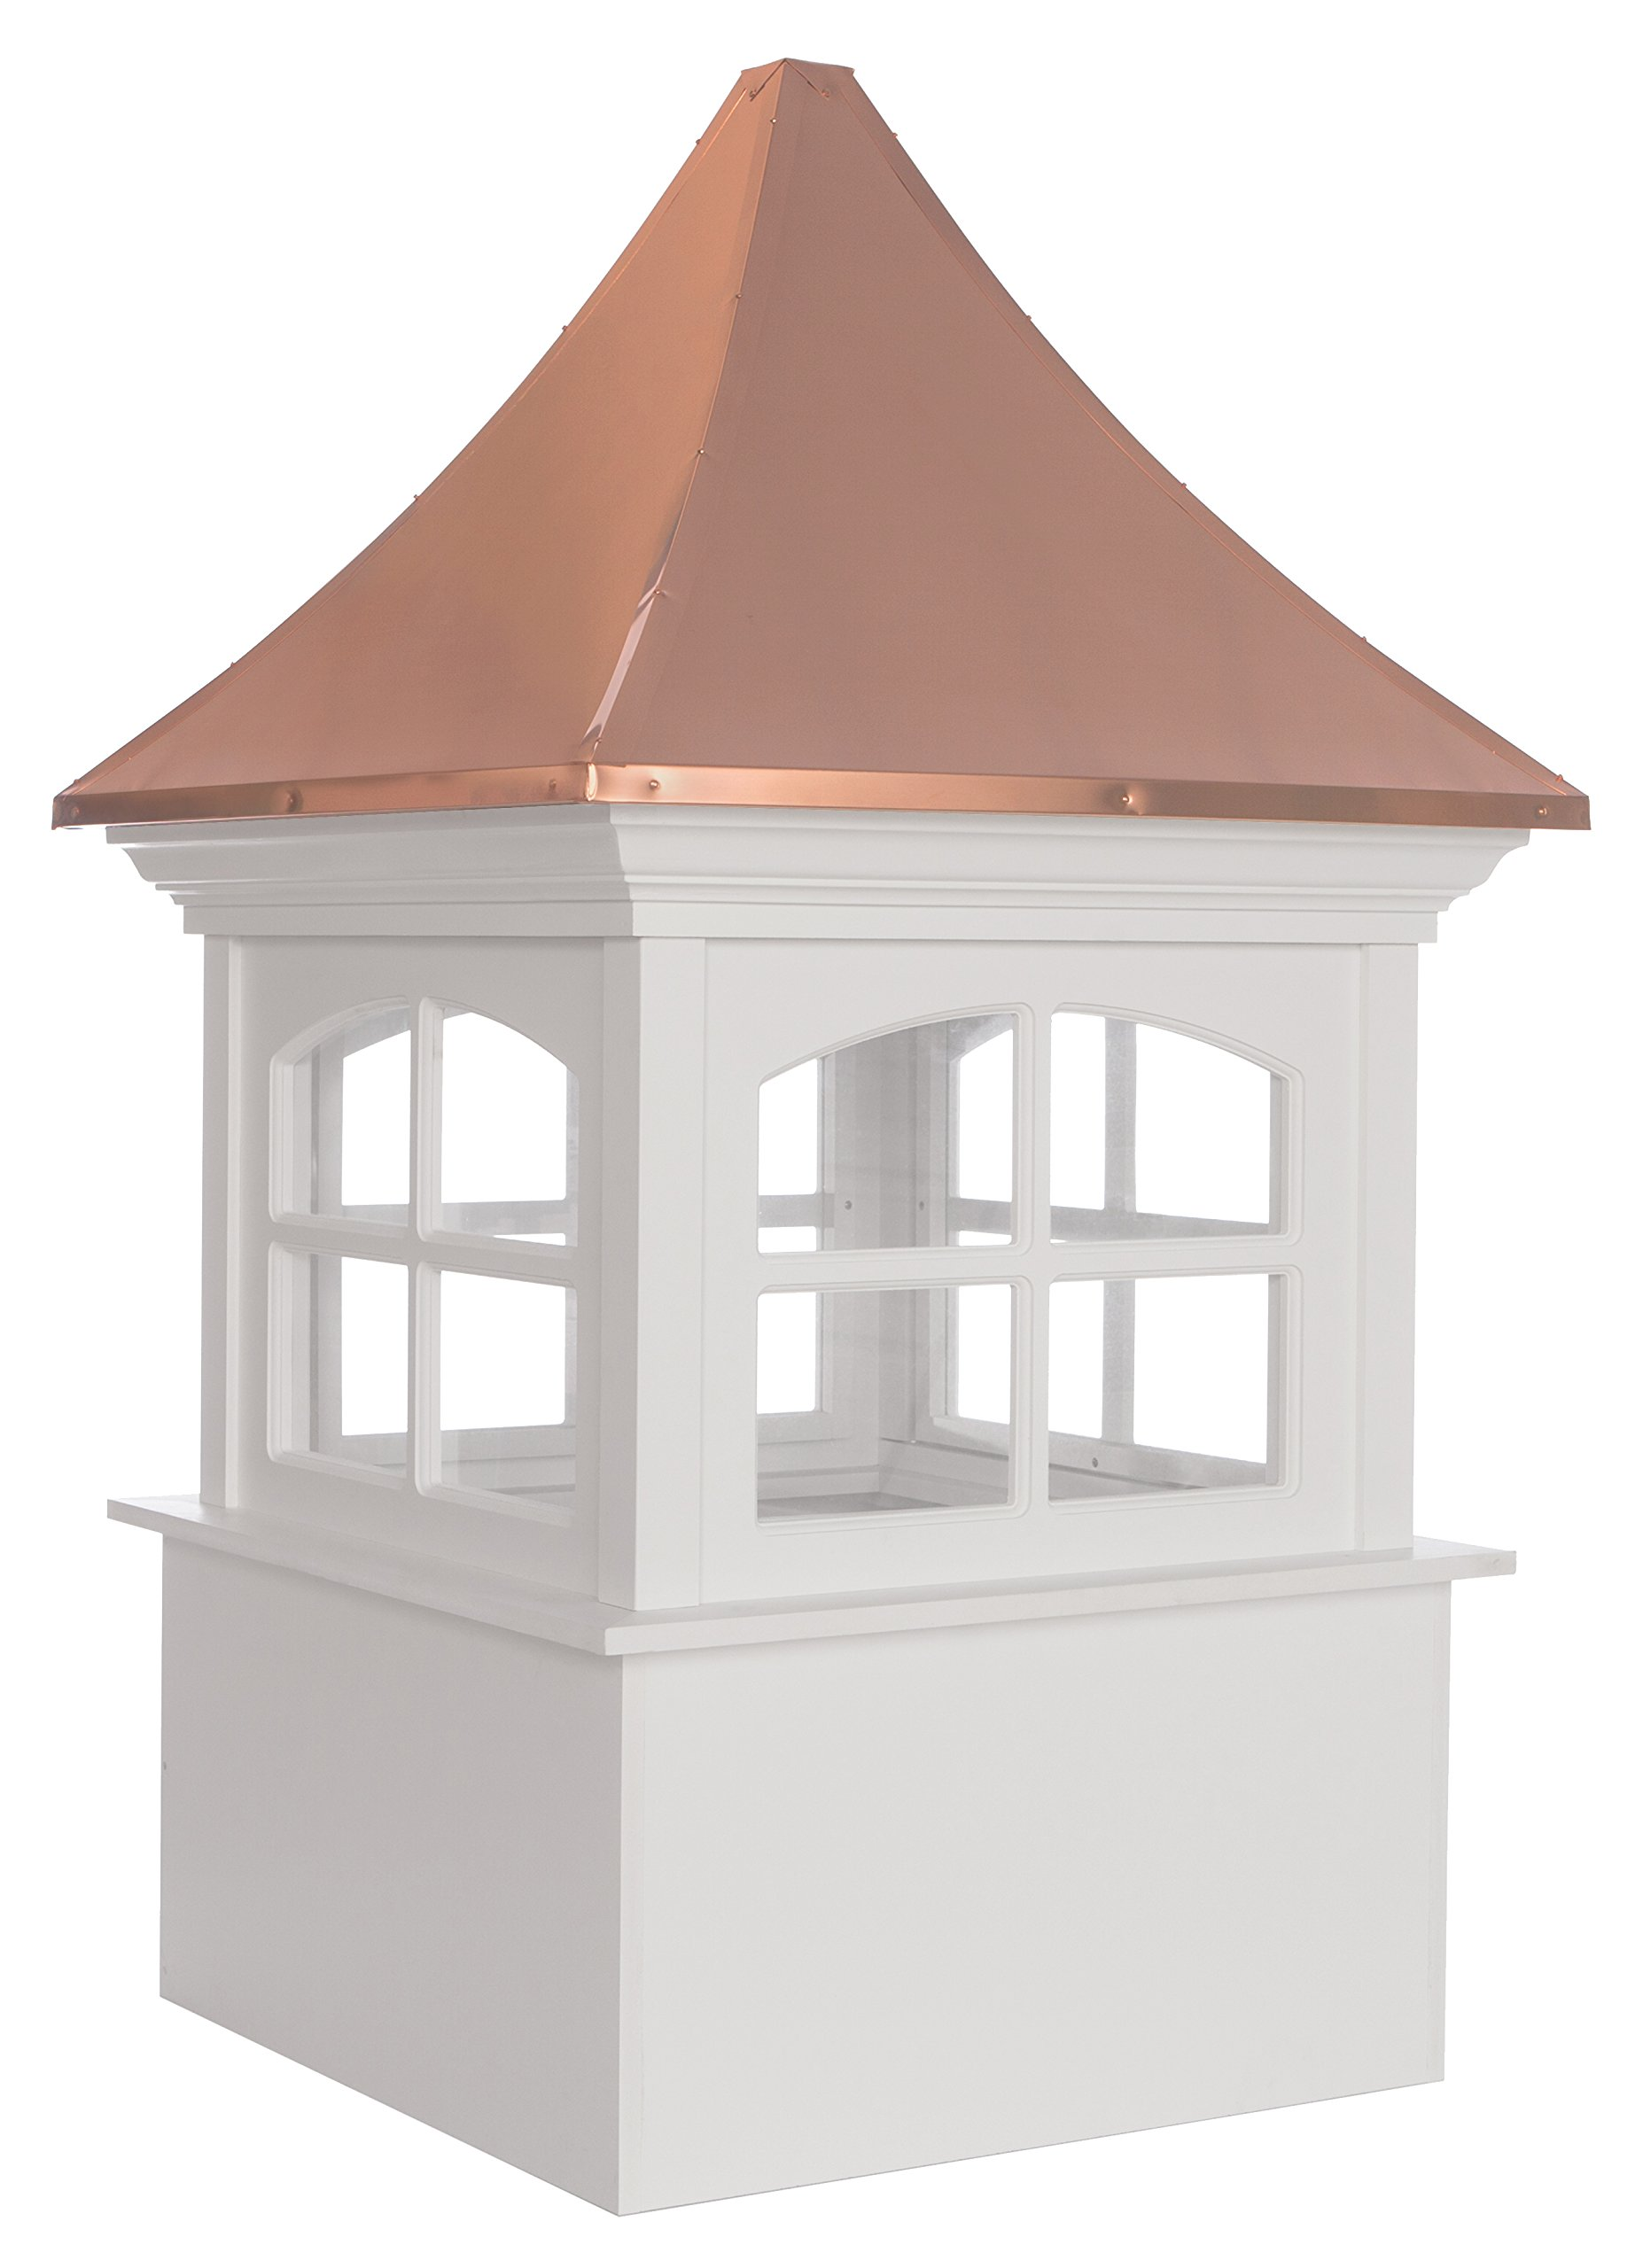 Westport Vinyl Cupola with Copper Roof 42'' x 66'' by Good Directions